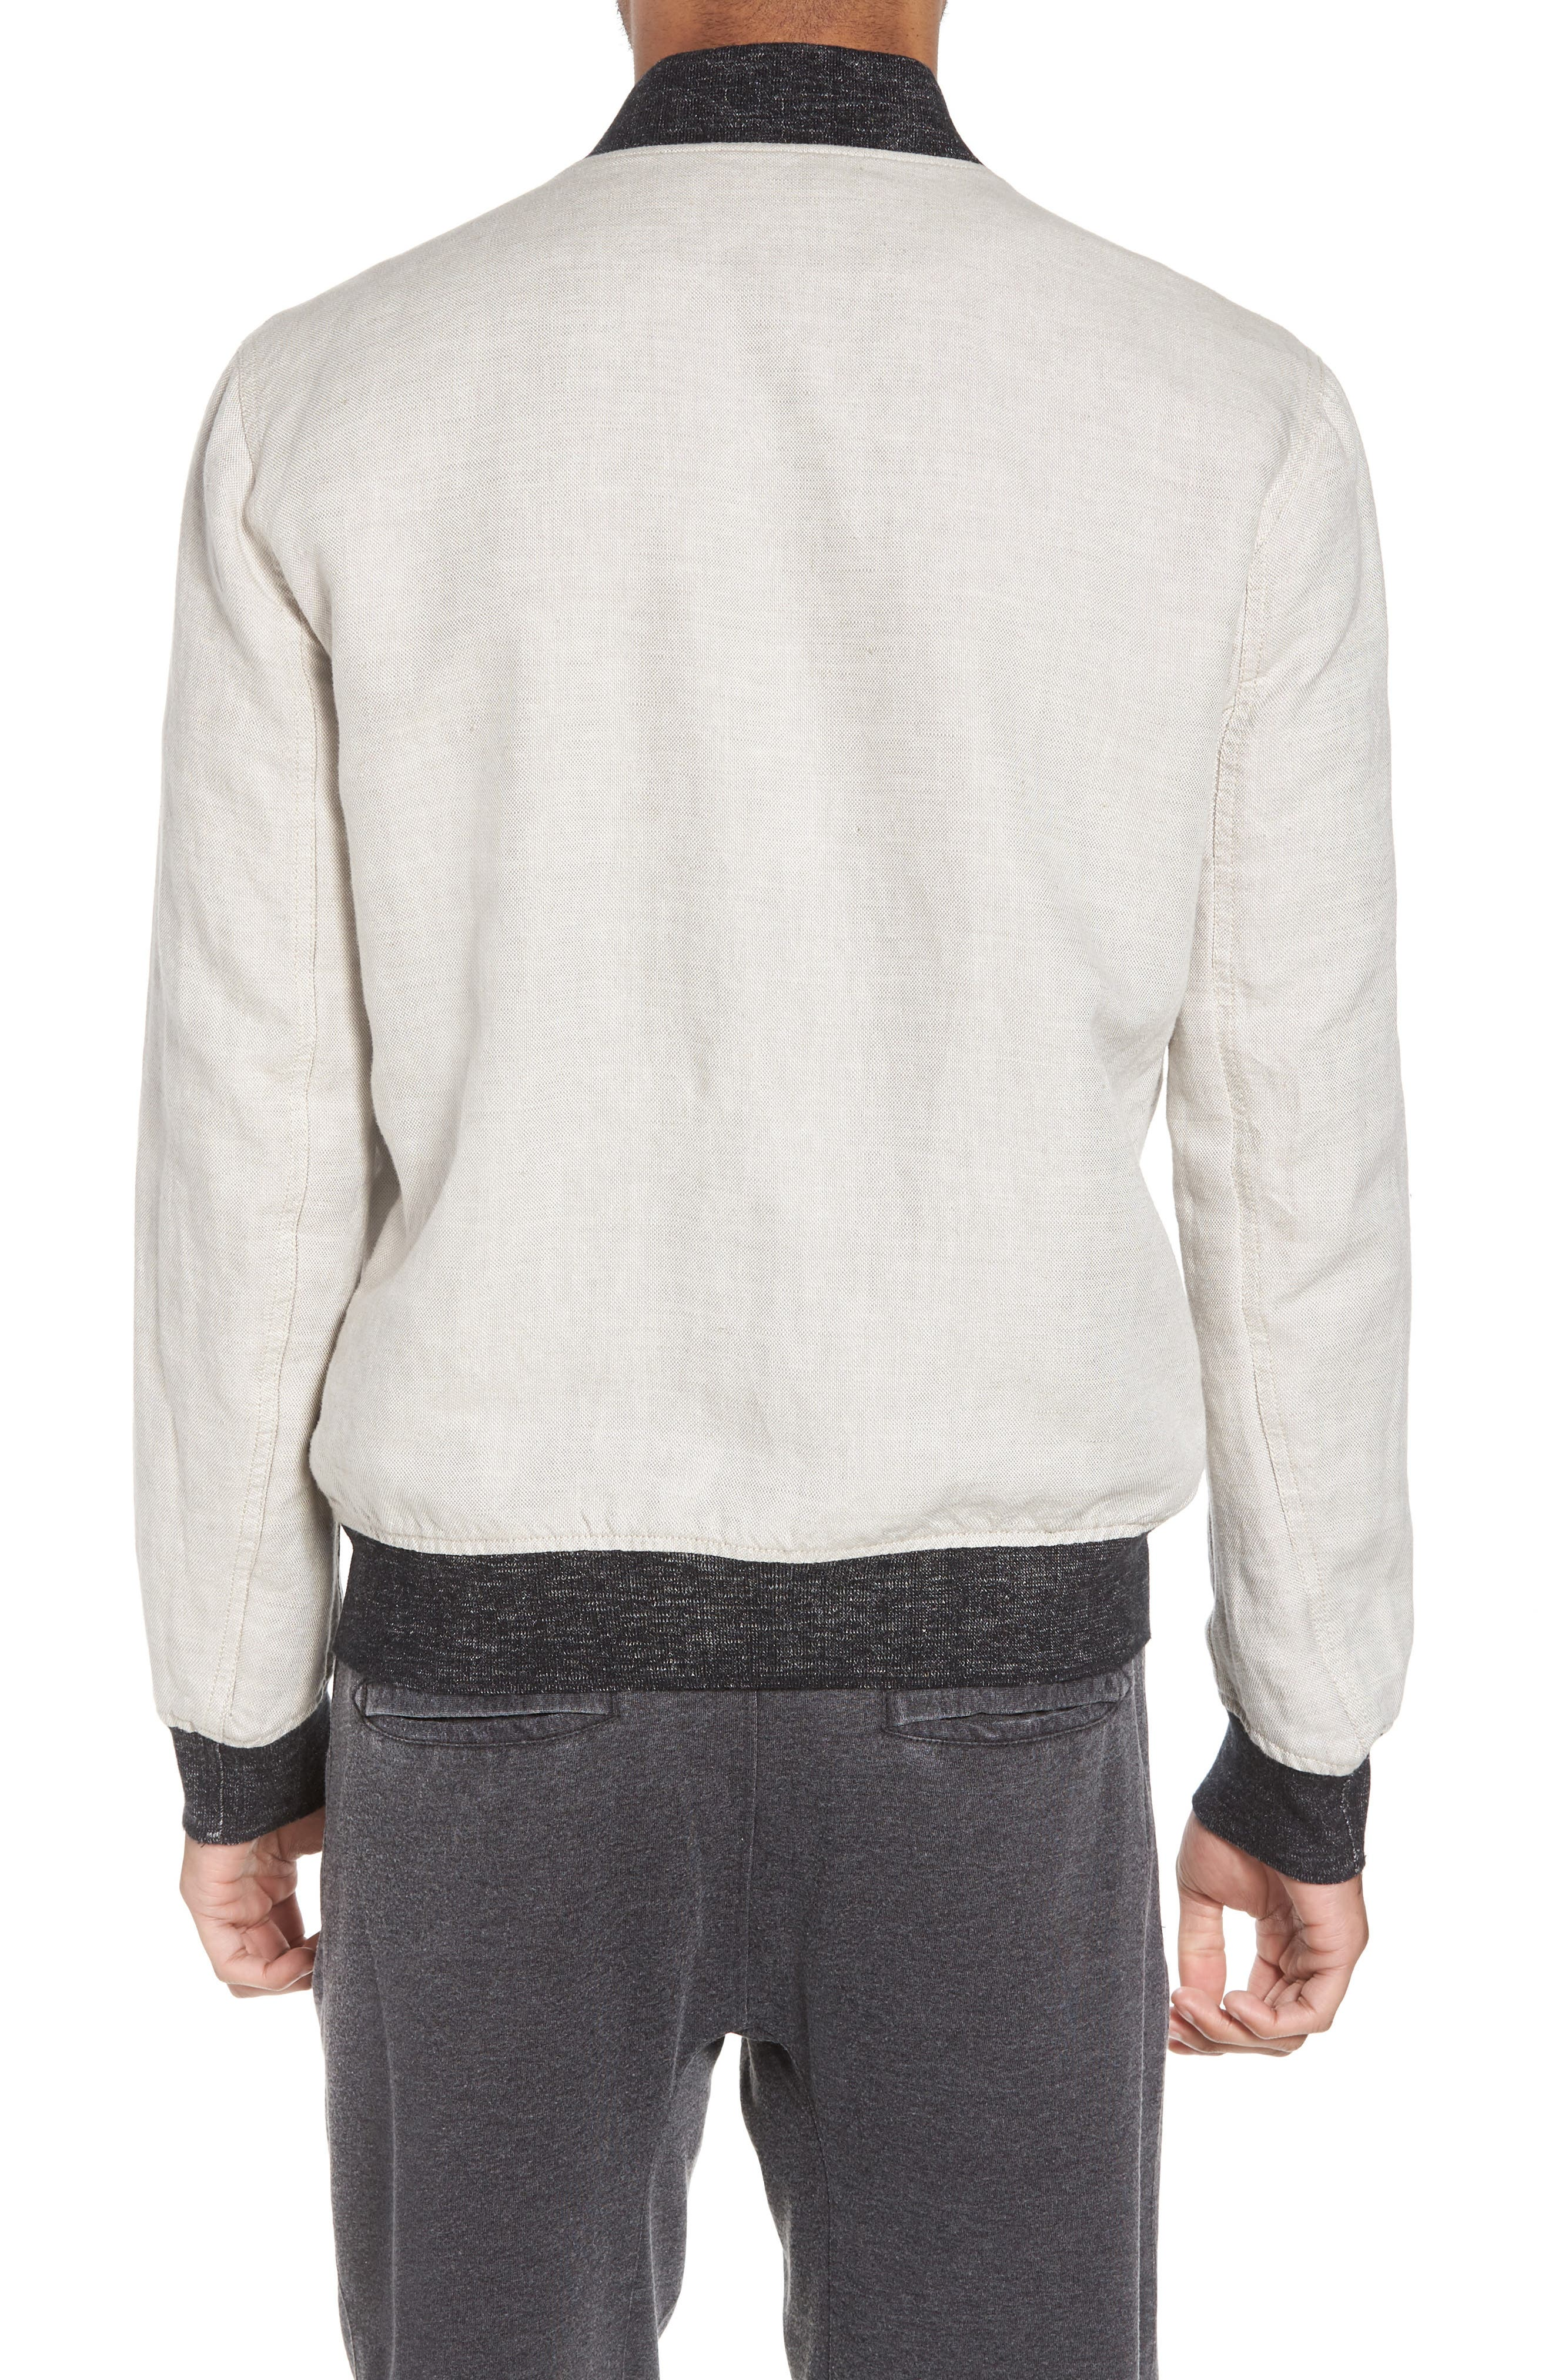 Aged Bomber Jacket,                             Alternate thumbnail 3, color,                             Fossil Grey